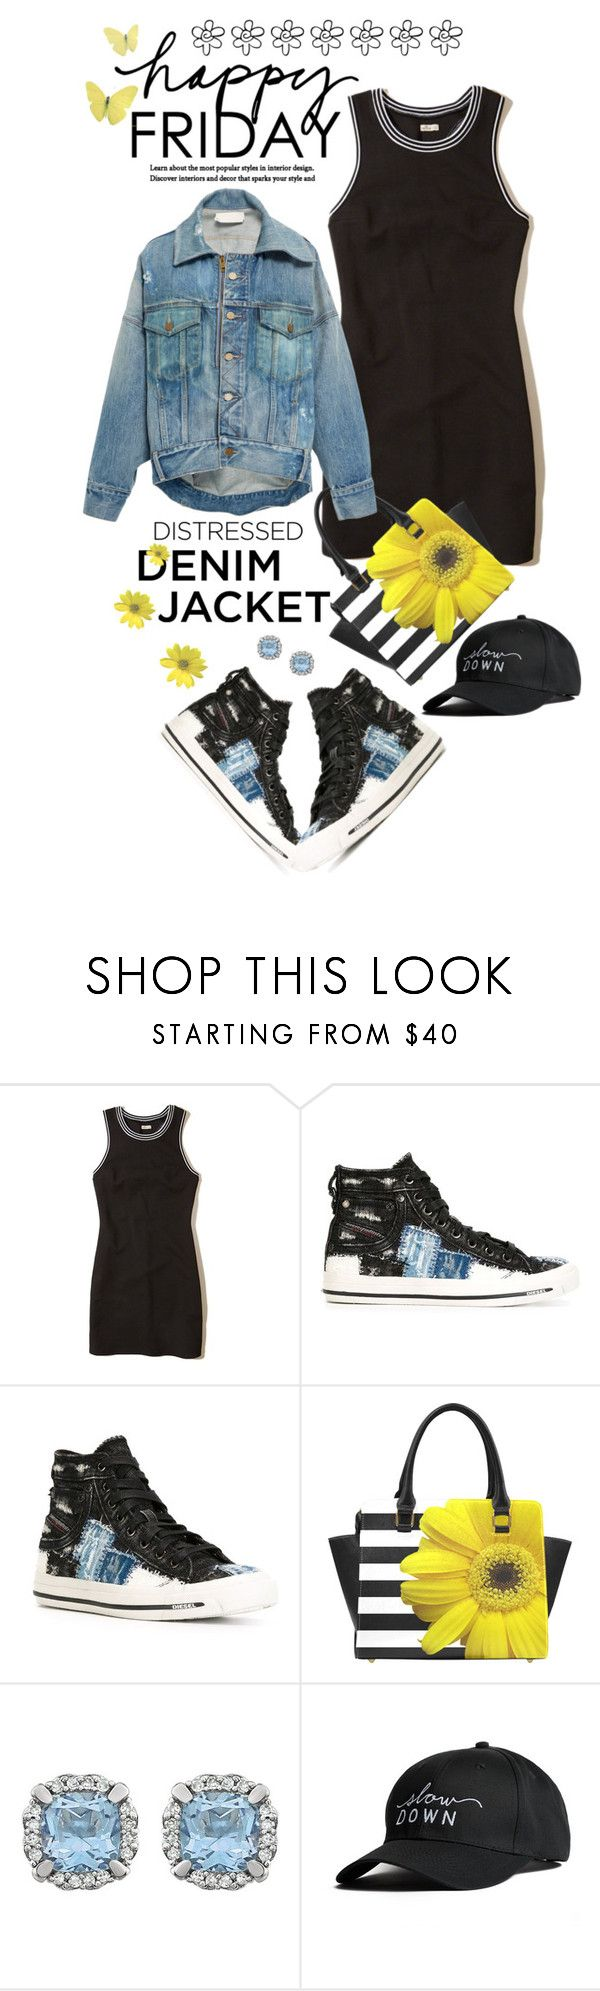 """""""Happy Friday!!!"""" by shortyluv718 ❤ liked on Polyvore featuring Hollister Co., Diesel, ATM by Anthony Thomas Melillo, Monse, cap, denimjacket, hightops and sneakers"""